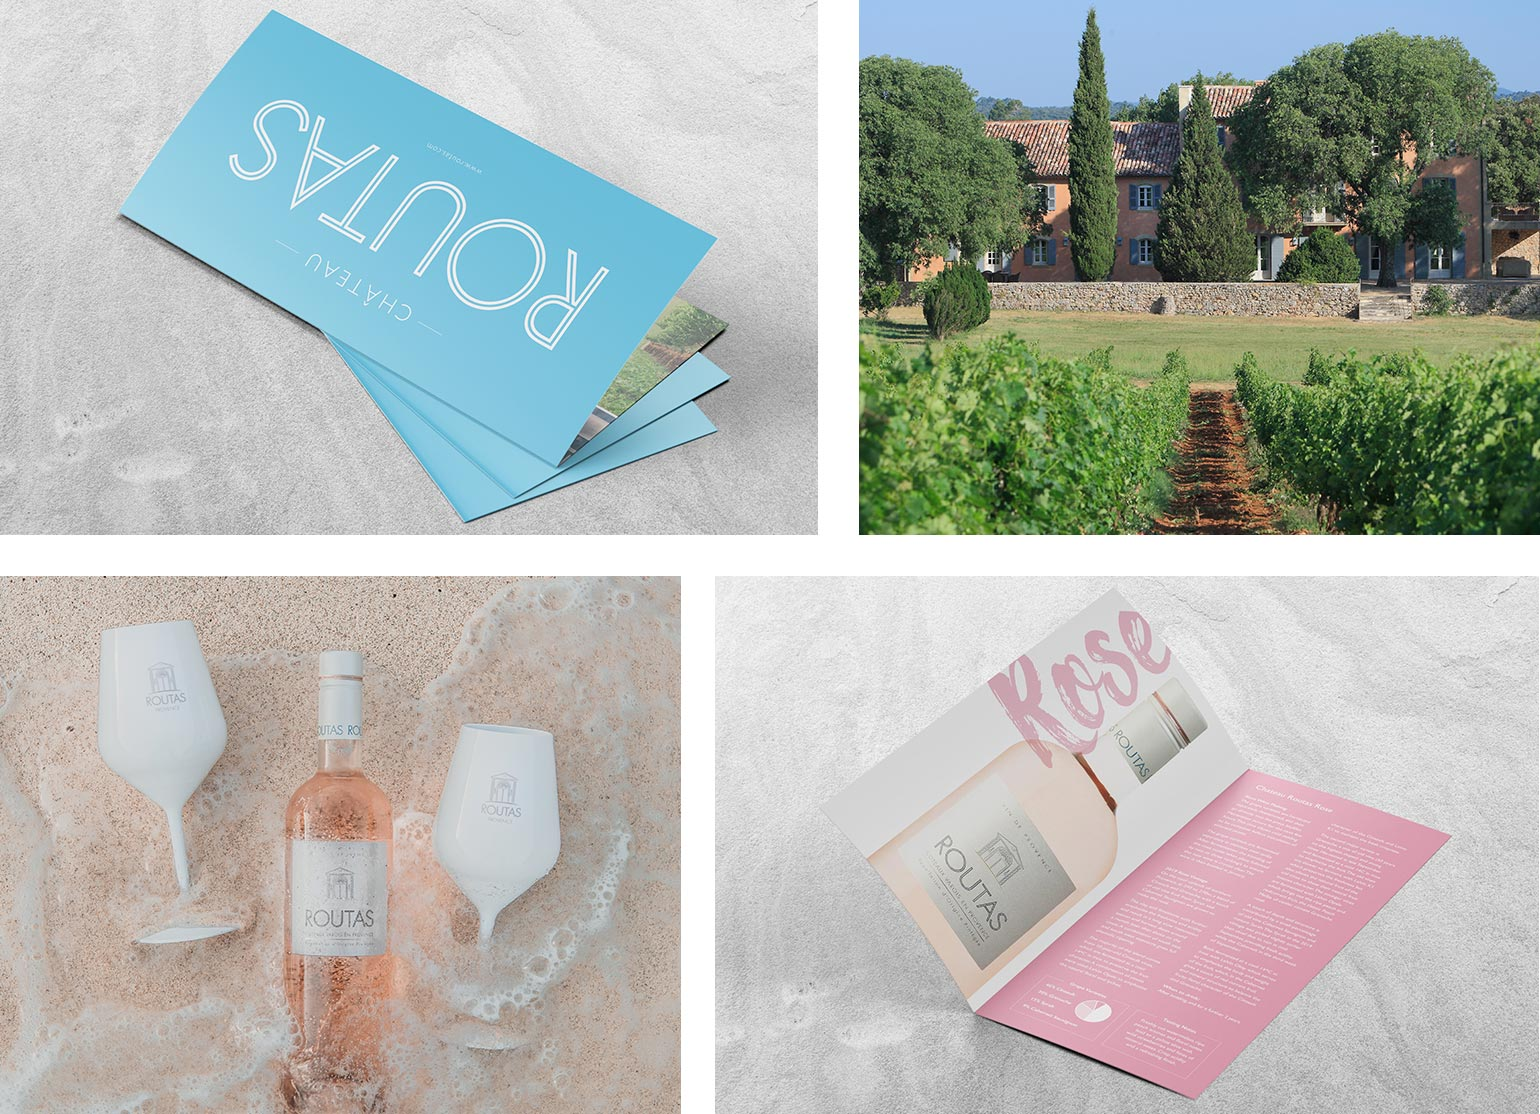 Graphic design for Chateau Routas